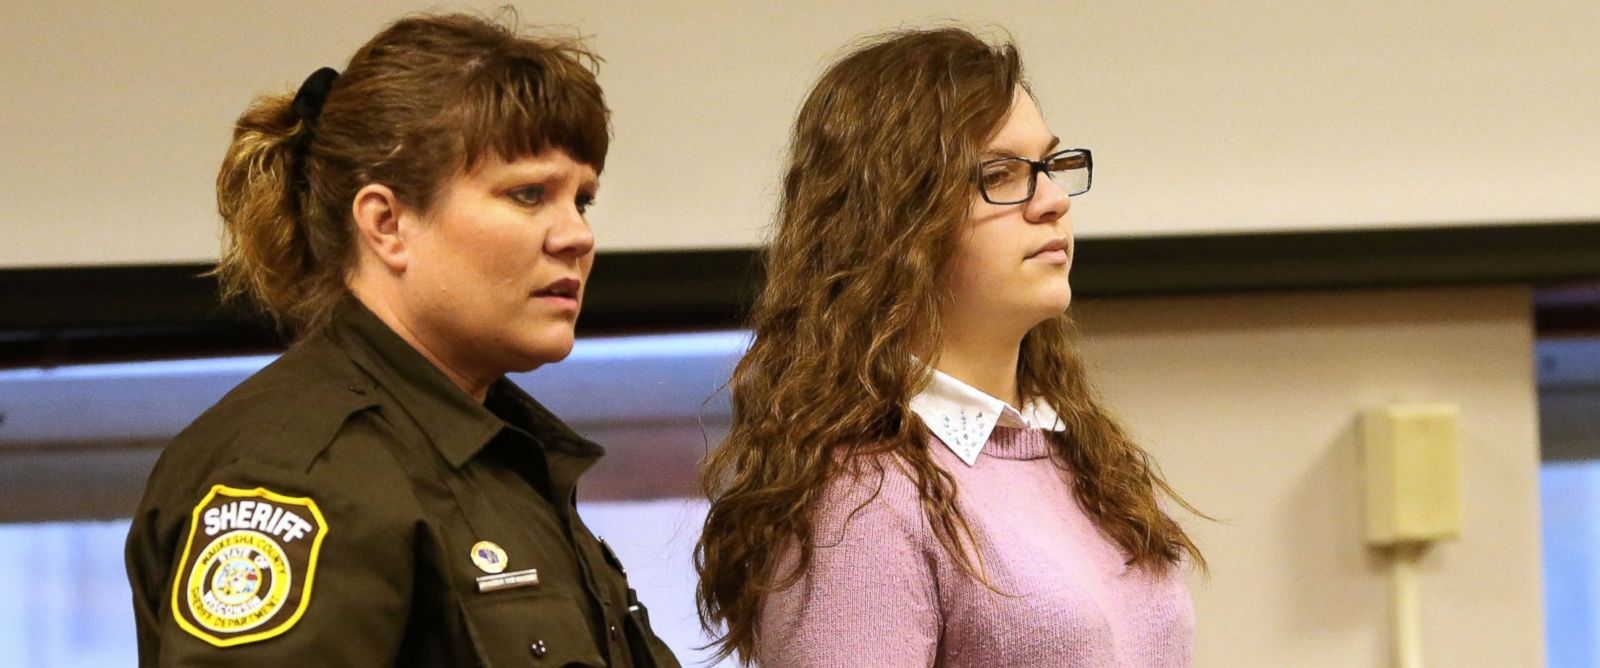 """PHOTO: Anissa Weier, accused of being involved in the stabbing of another girl related to the """"Slenderman"""" online story, is led into the courtroom on Dec. 22, 2016, in Waukesha, Wisconsin."""